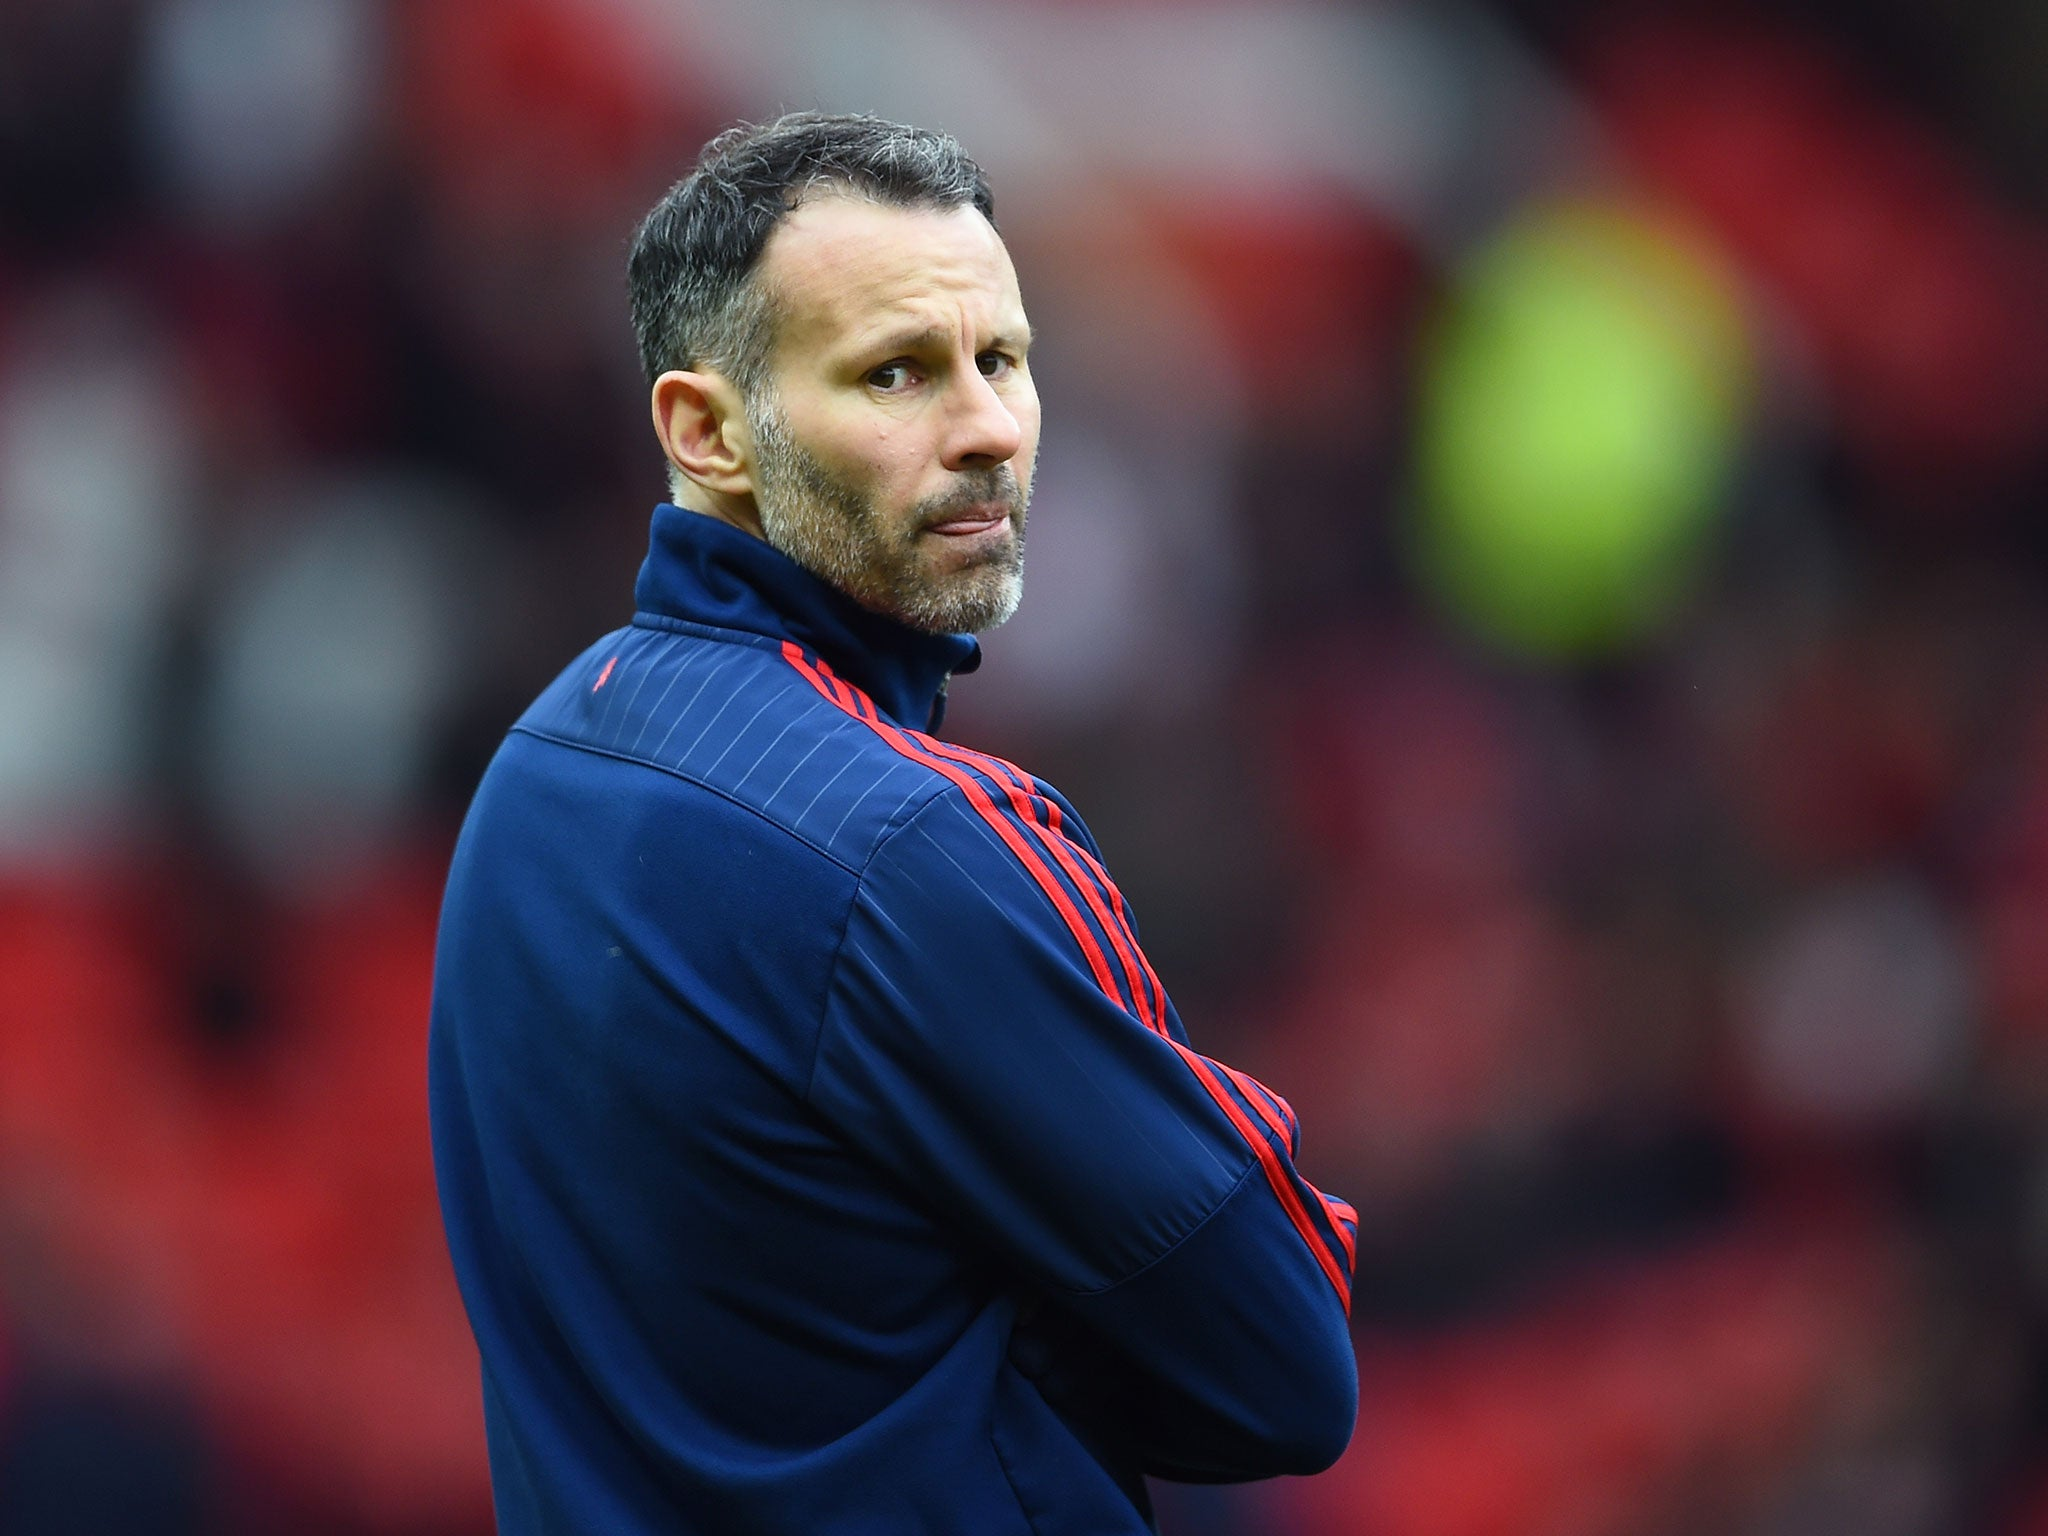 Next Wales manager: Ryan Giggs and Craig Bellamy contenders to replace Chris Coleman